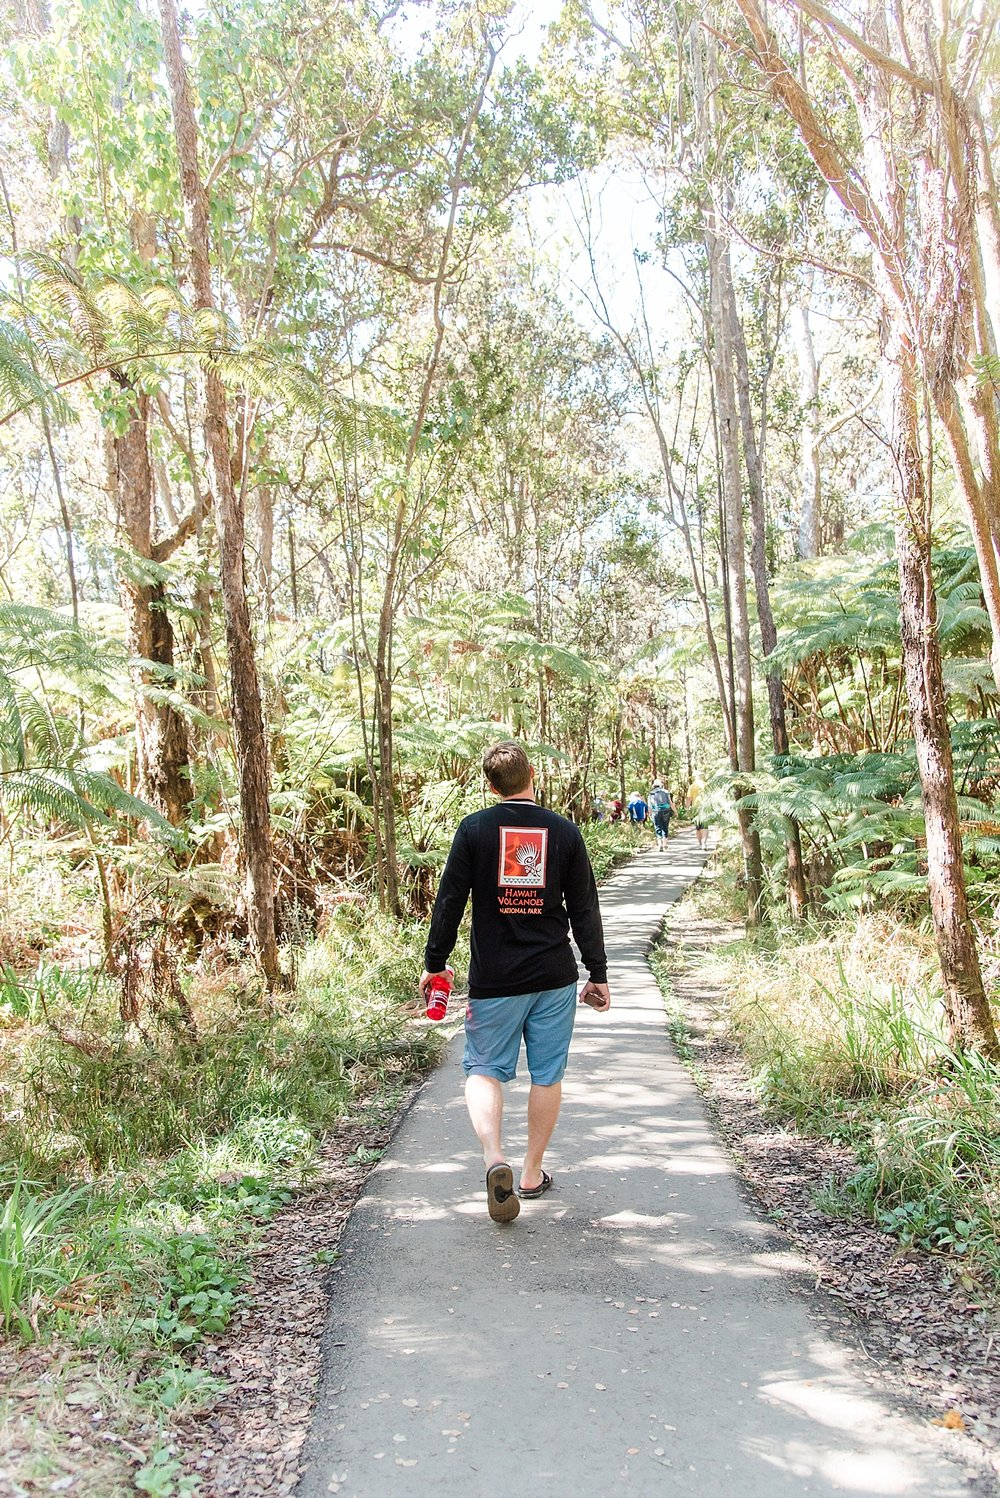 Lovely walk back to the car from the lava tube. Kevin is rocking his souvenir shirt! -